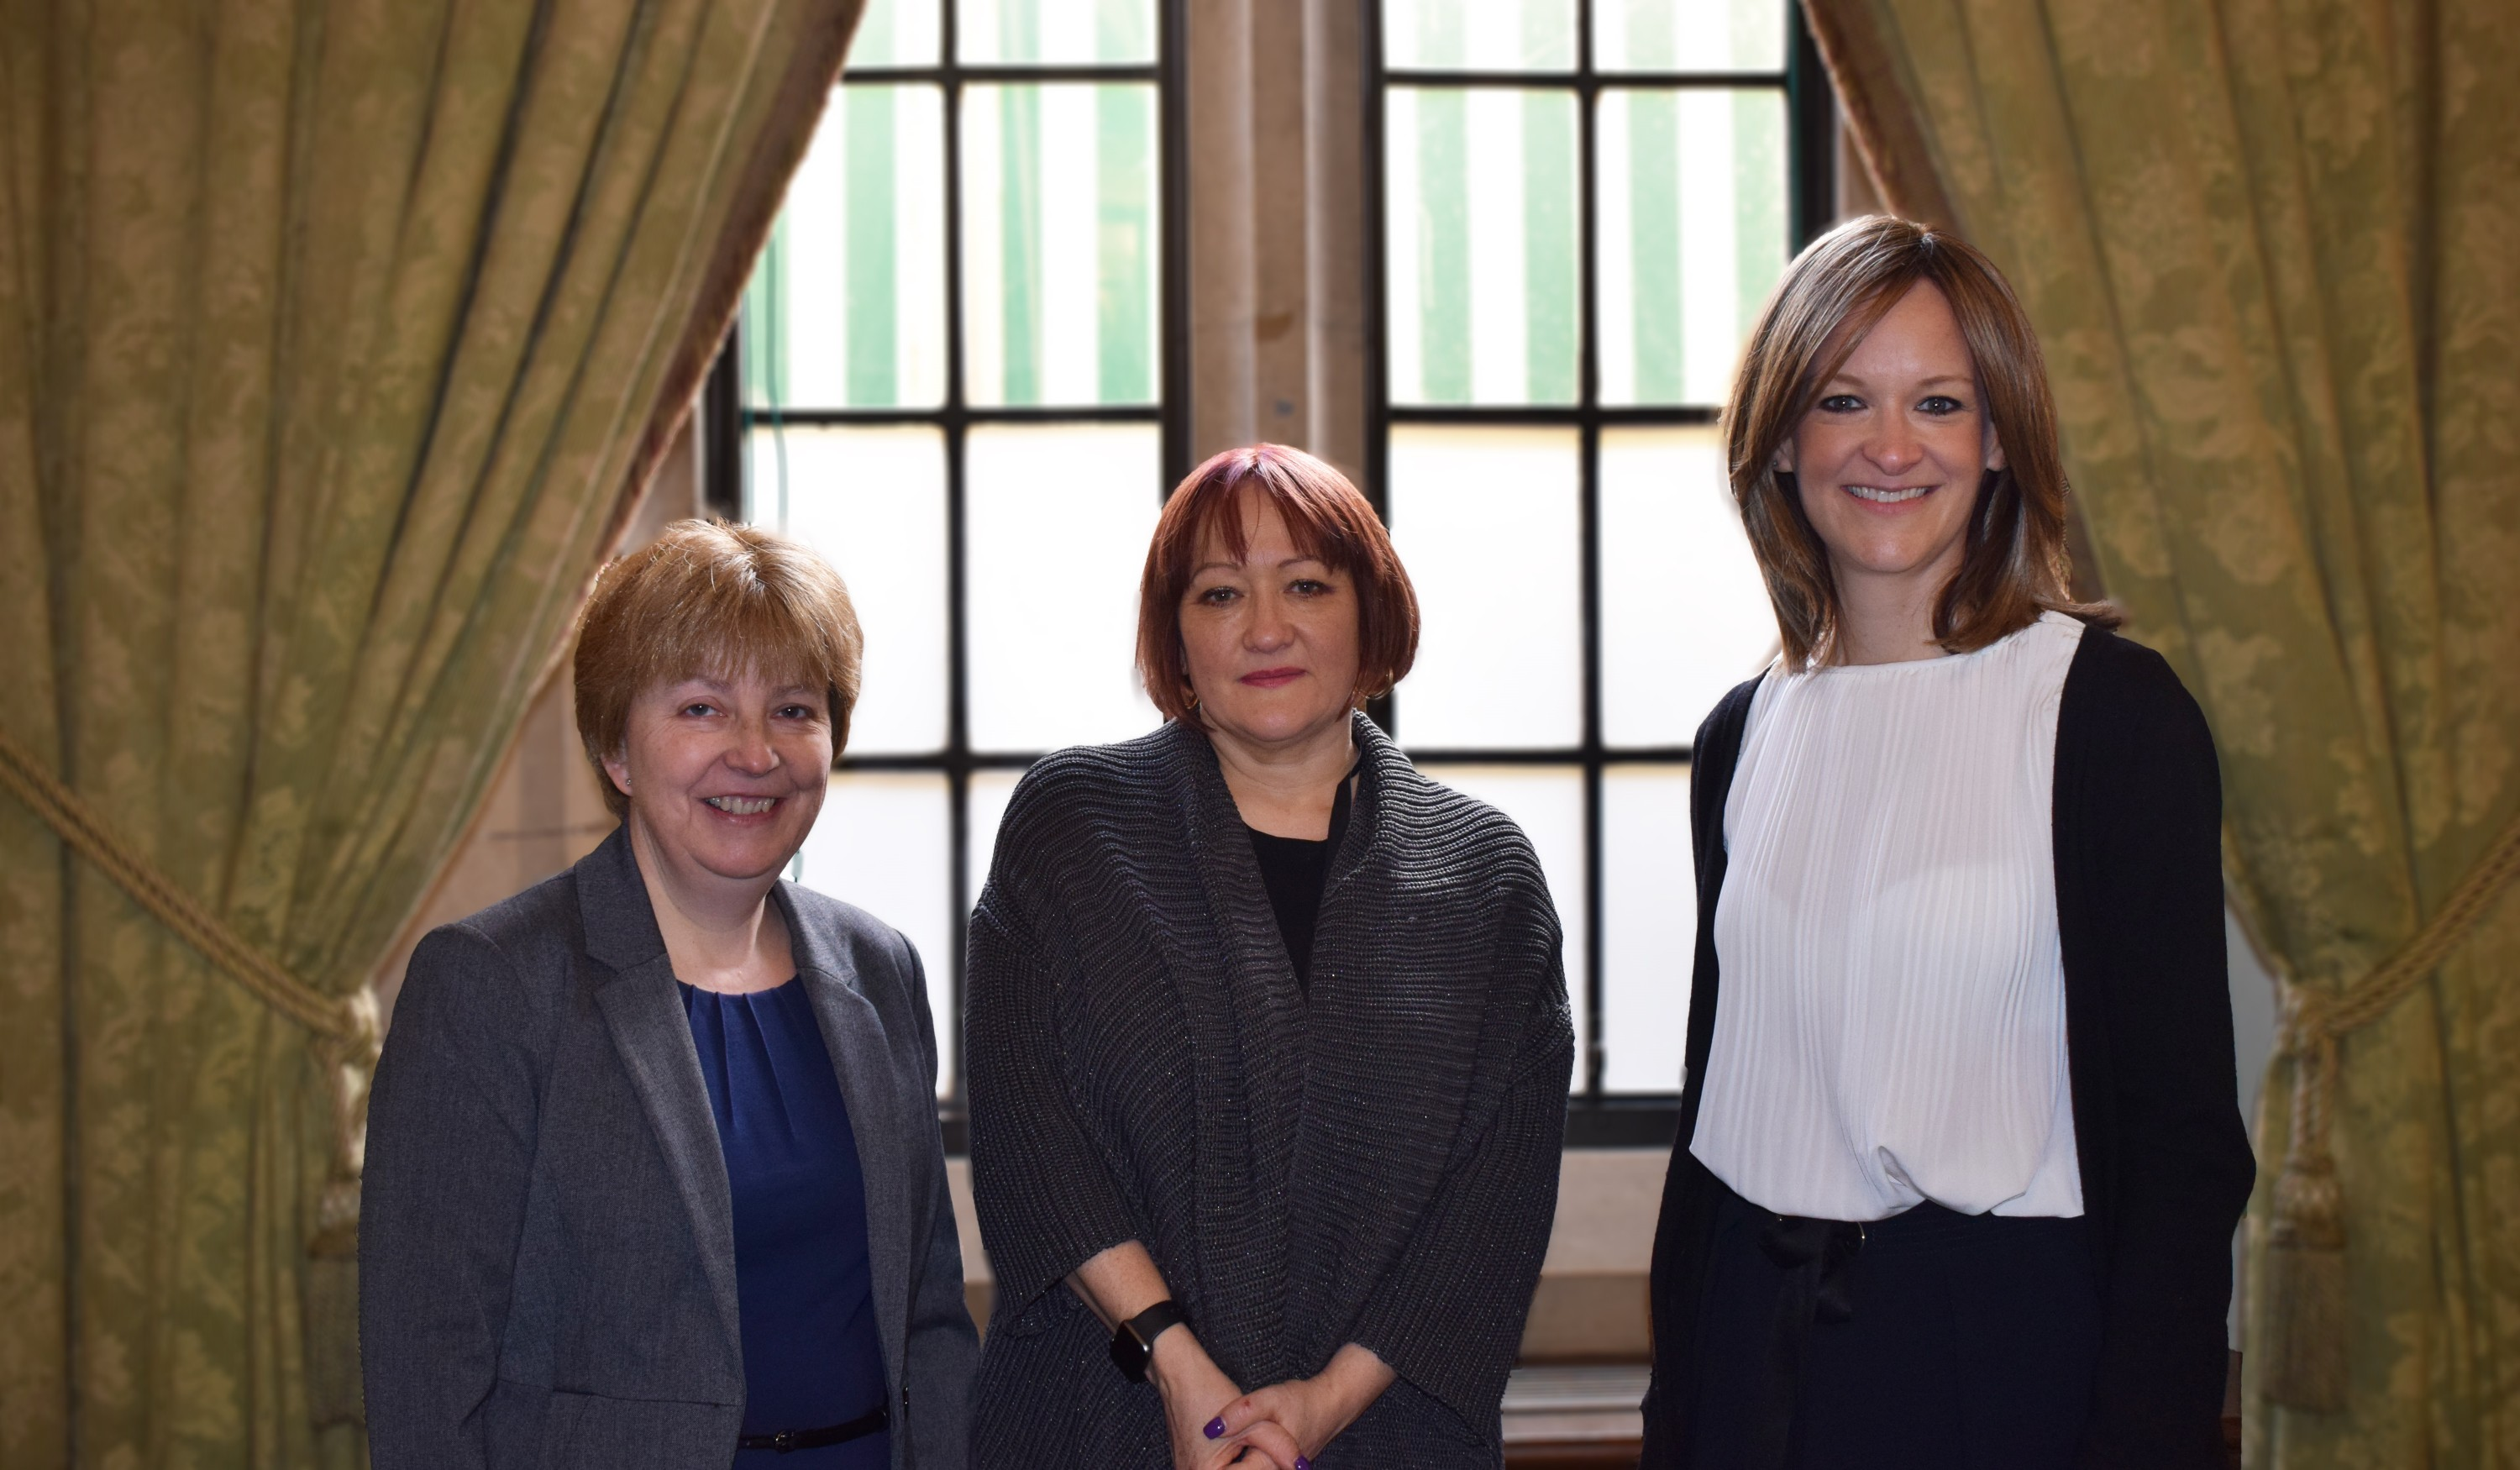 The Brexit Effect project lead Professor Linda Hendry with Kerry McCarthy MP, Select Committee on Environment, Food and Rural Affairs, and Gail Orton, Director, Government Affairs, Europe, Tate and Lyle Sugars.